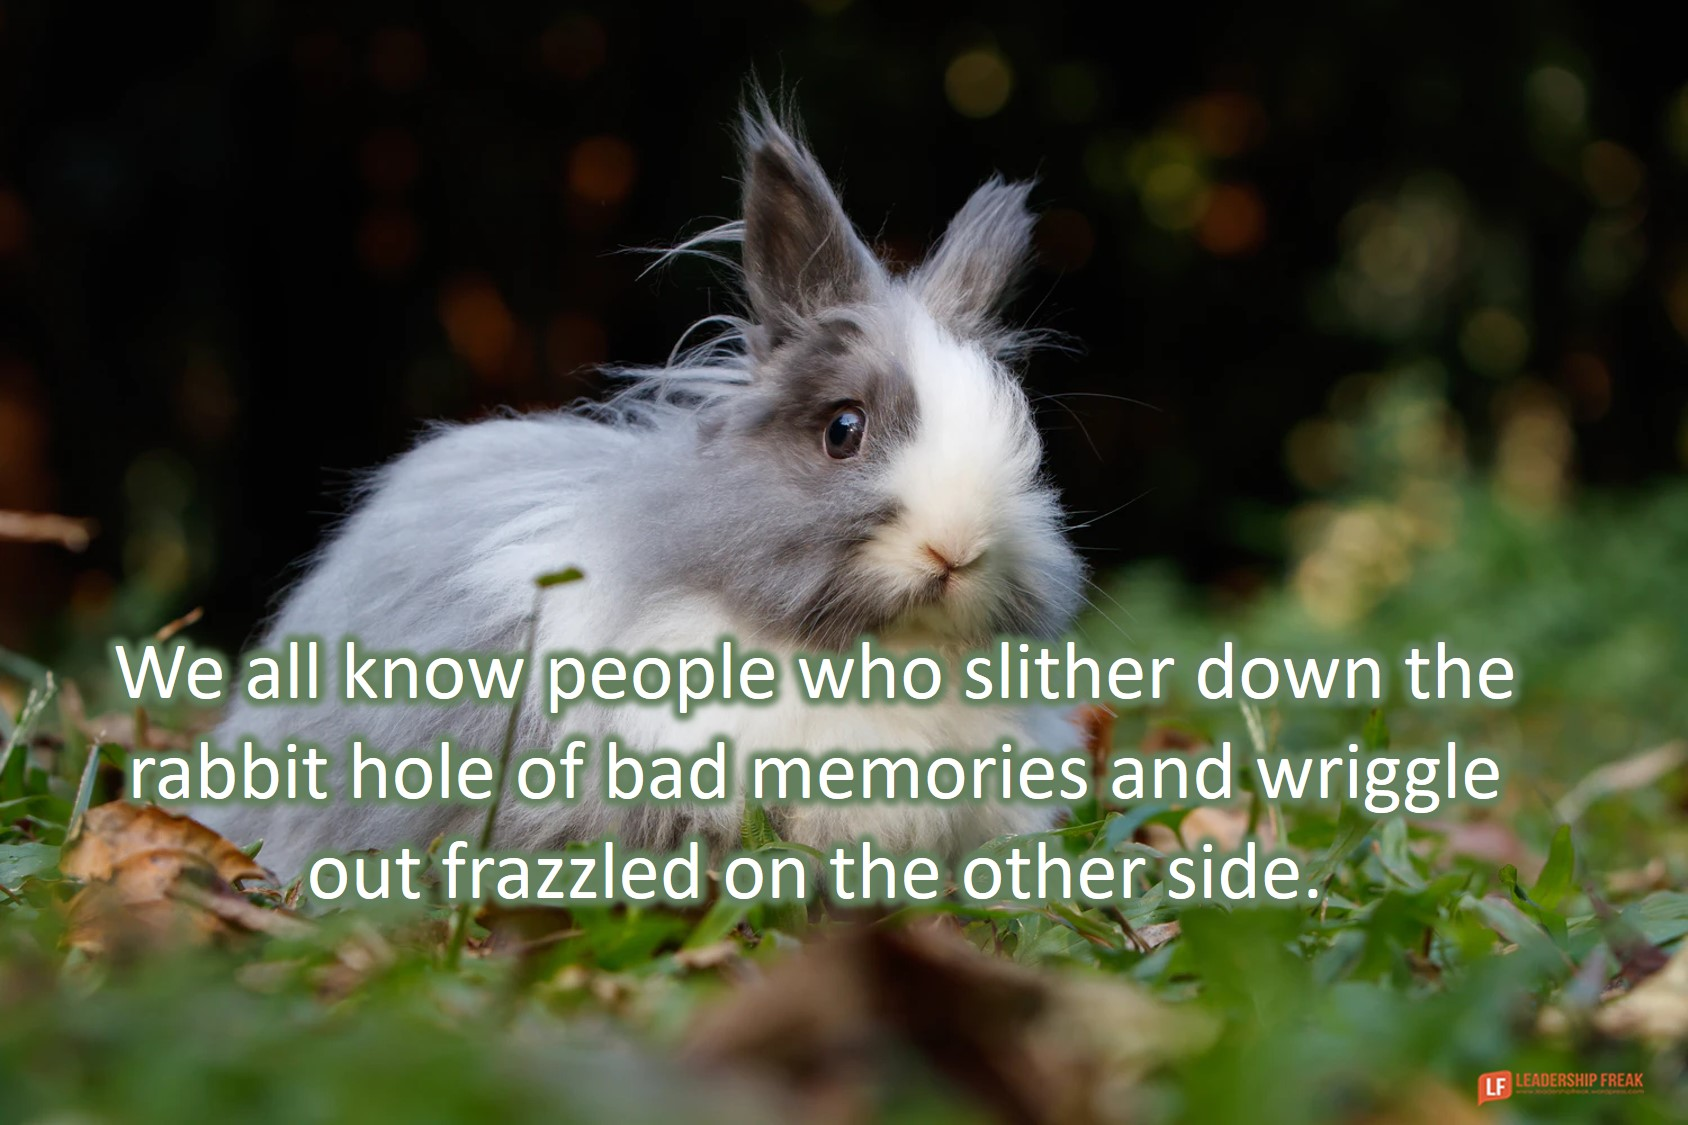 Rabbit  We all know people who slither down the rabbit hole of bad memories and wriggle out frazzled on the other side.